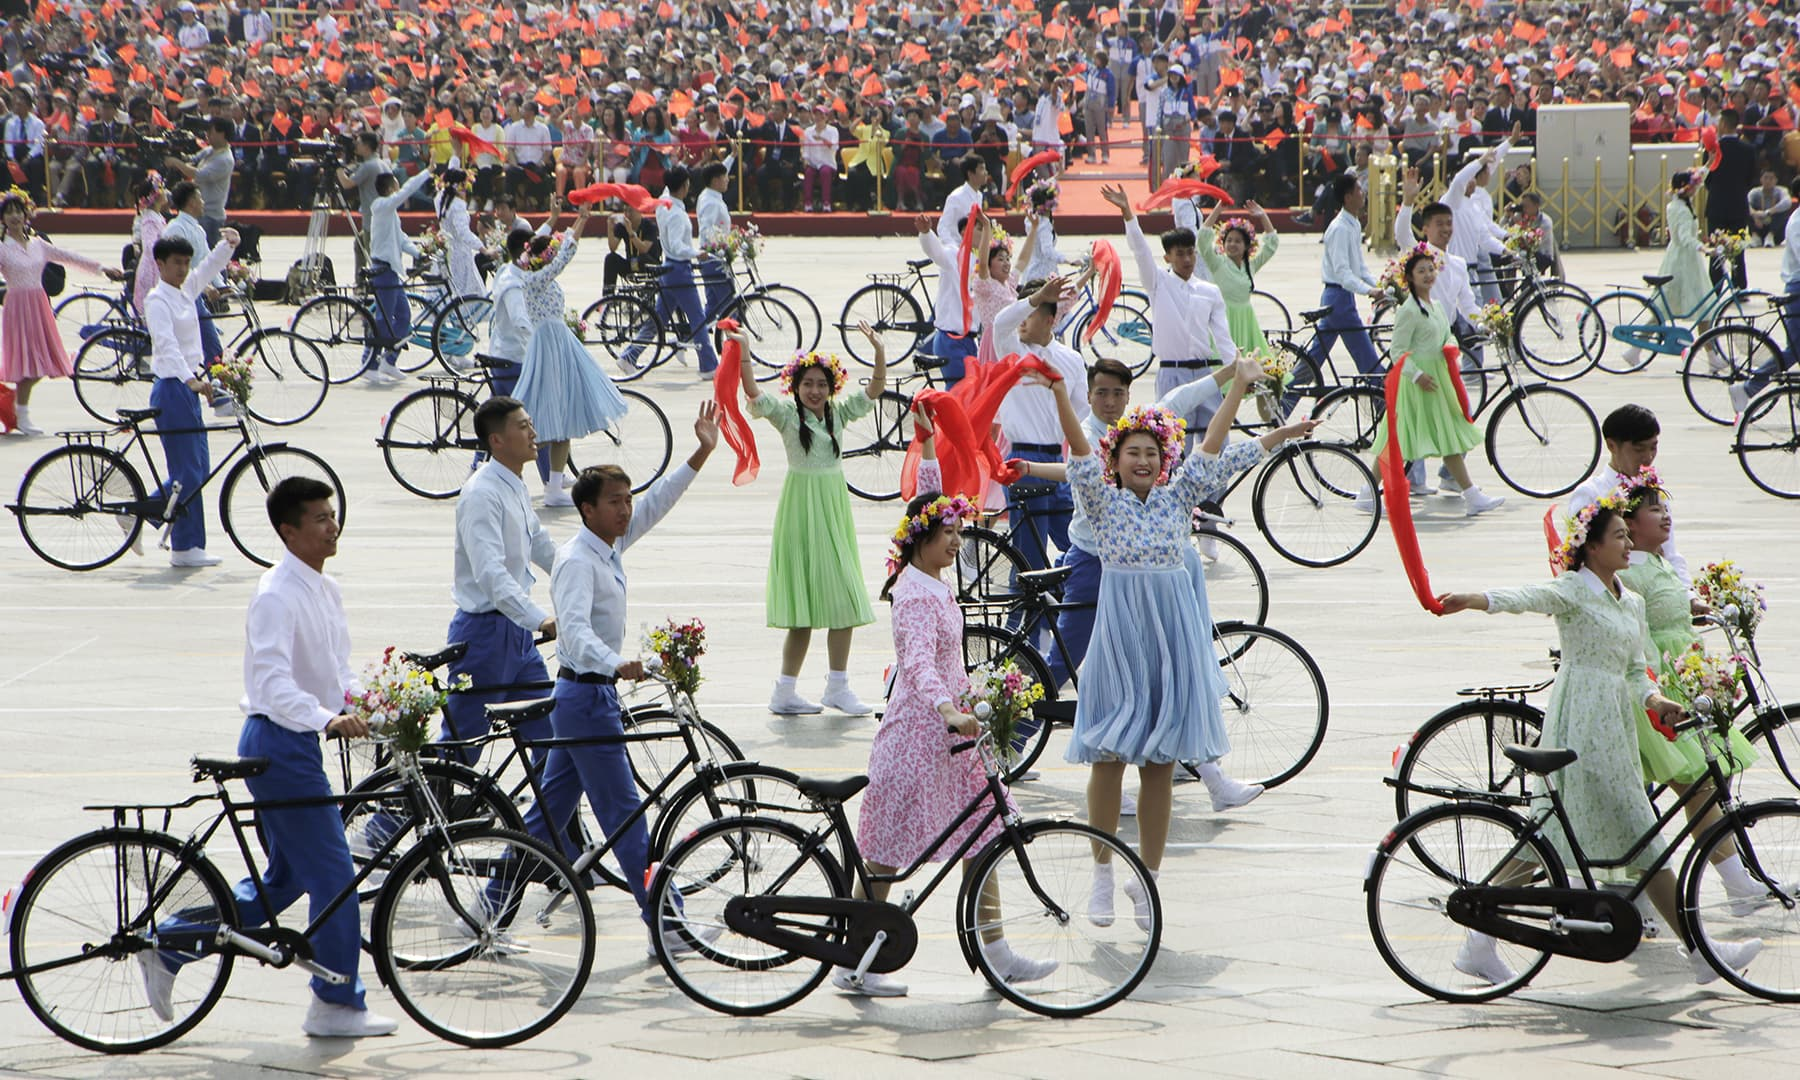 Performers with bicycles take part in the parade marking the 70th founding anniversary of People's Republic of China, on its National Day in Beijing. — Reuters